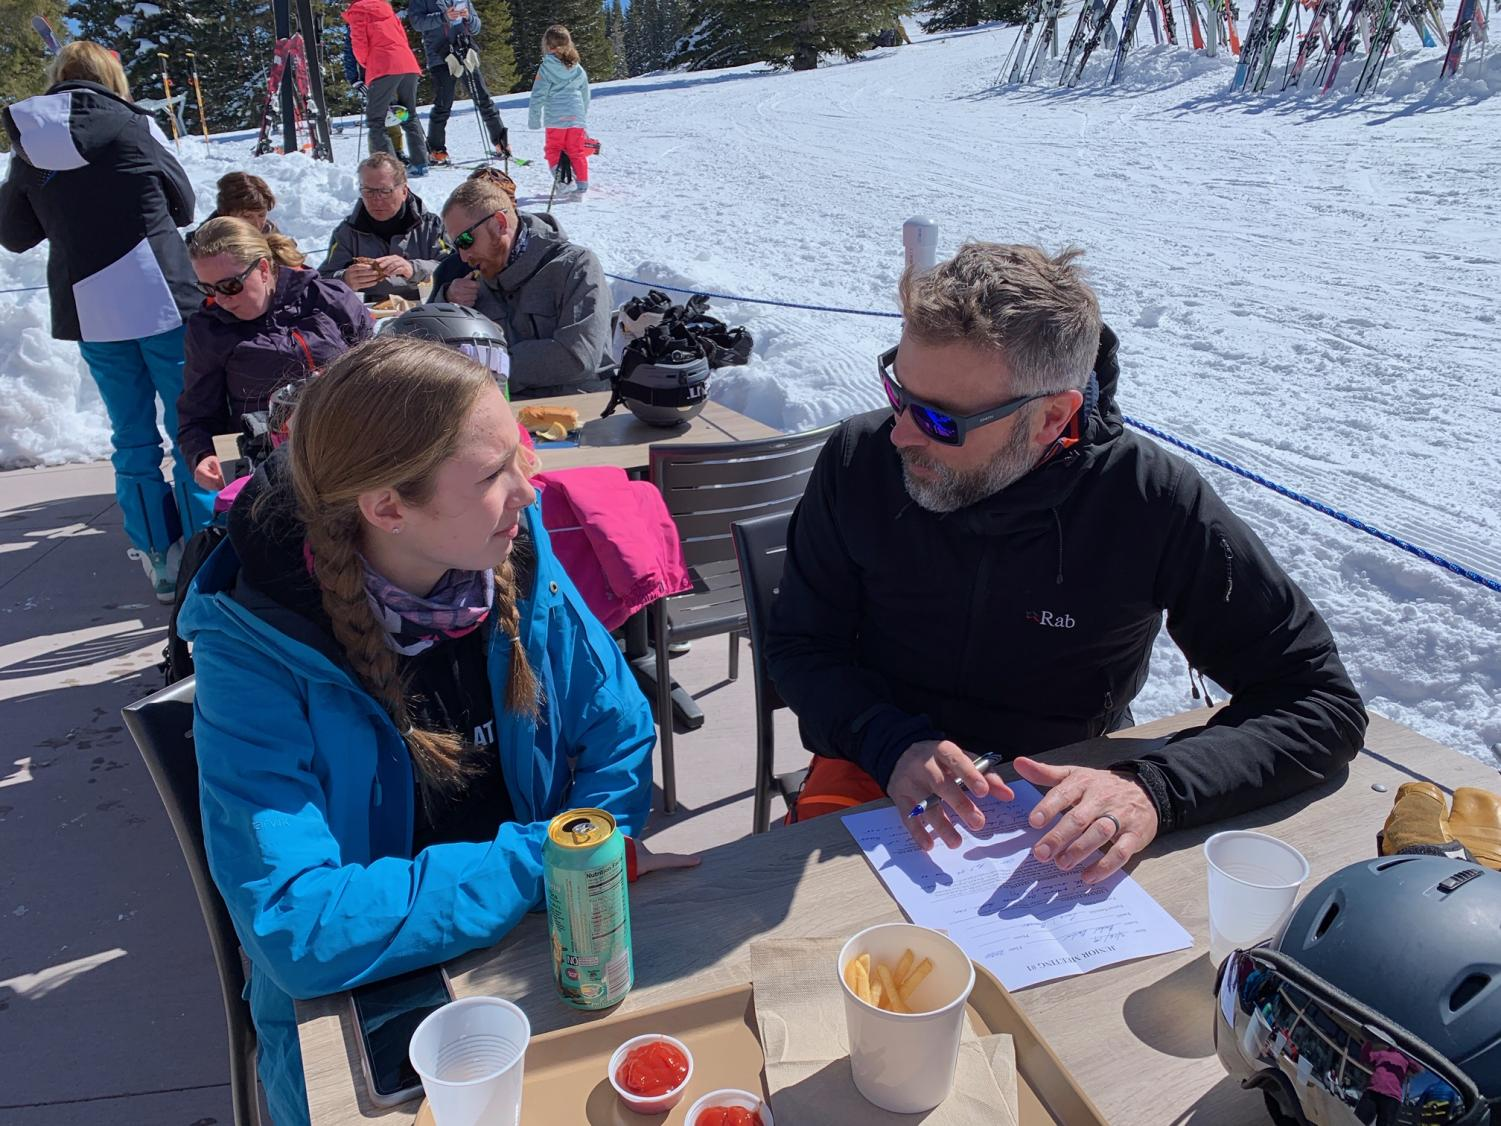 Charlie Laube discussing college with Rachel Devlin on the slopes.